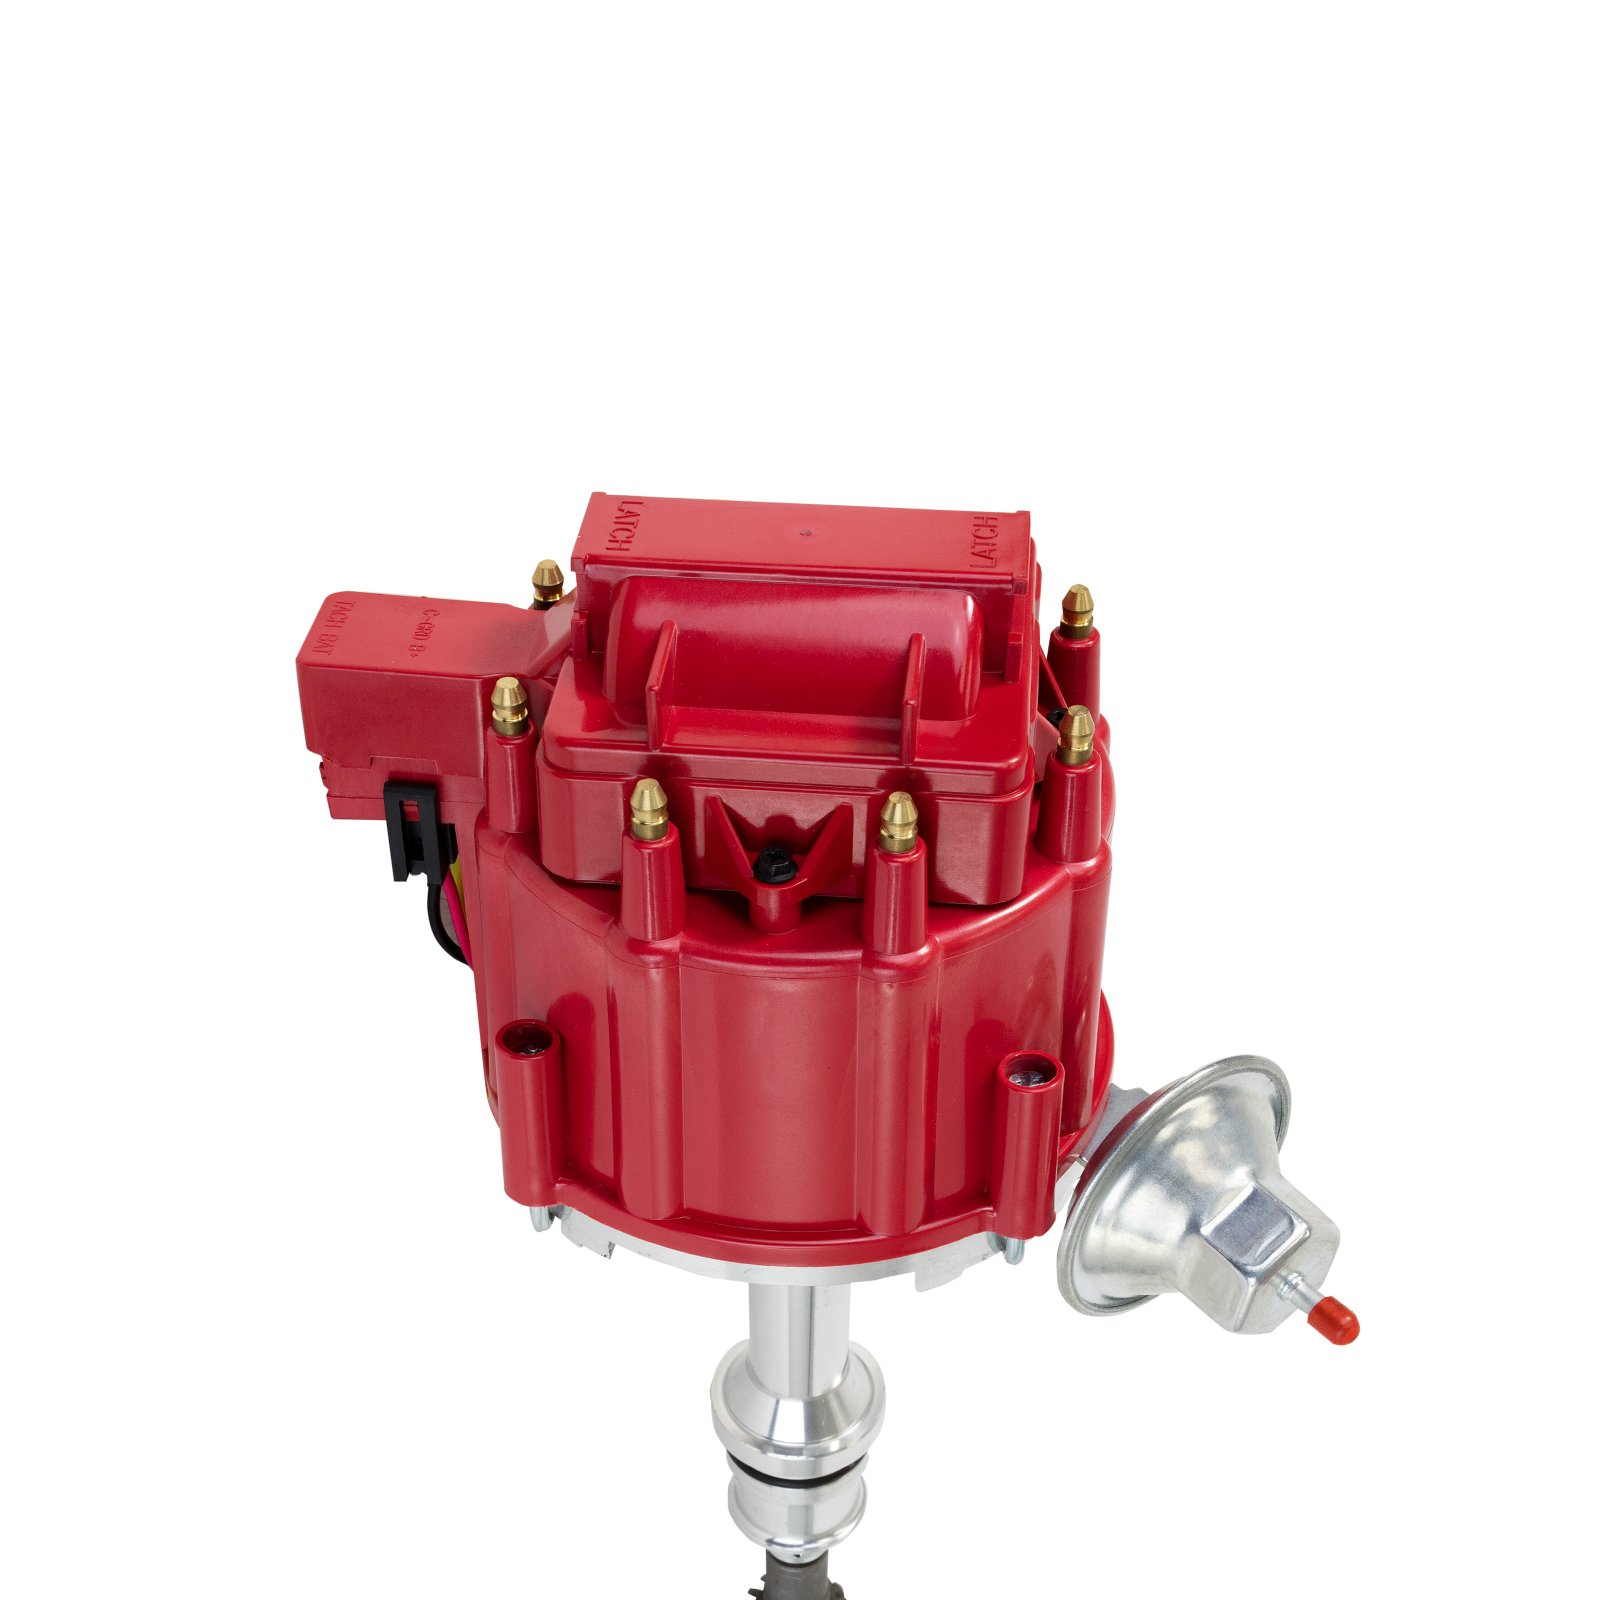 Top Street Performance Jm6502r Ford Small Block 221 302 Hei Chevy Distributor Coil Cap With Red Oem 65k Volt Distributors Parts Automotive